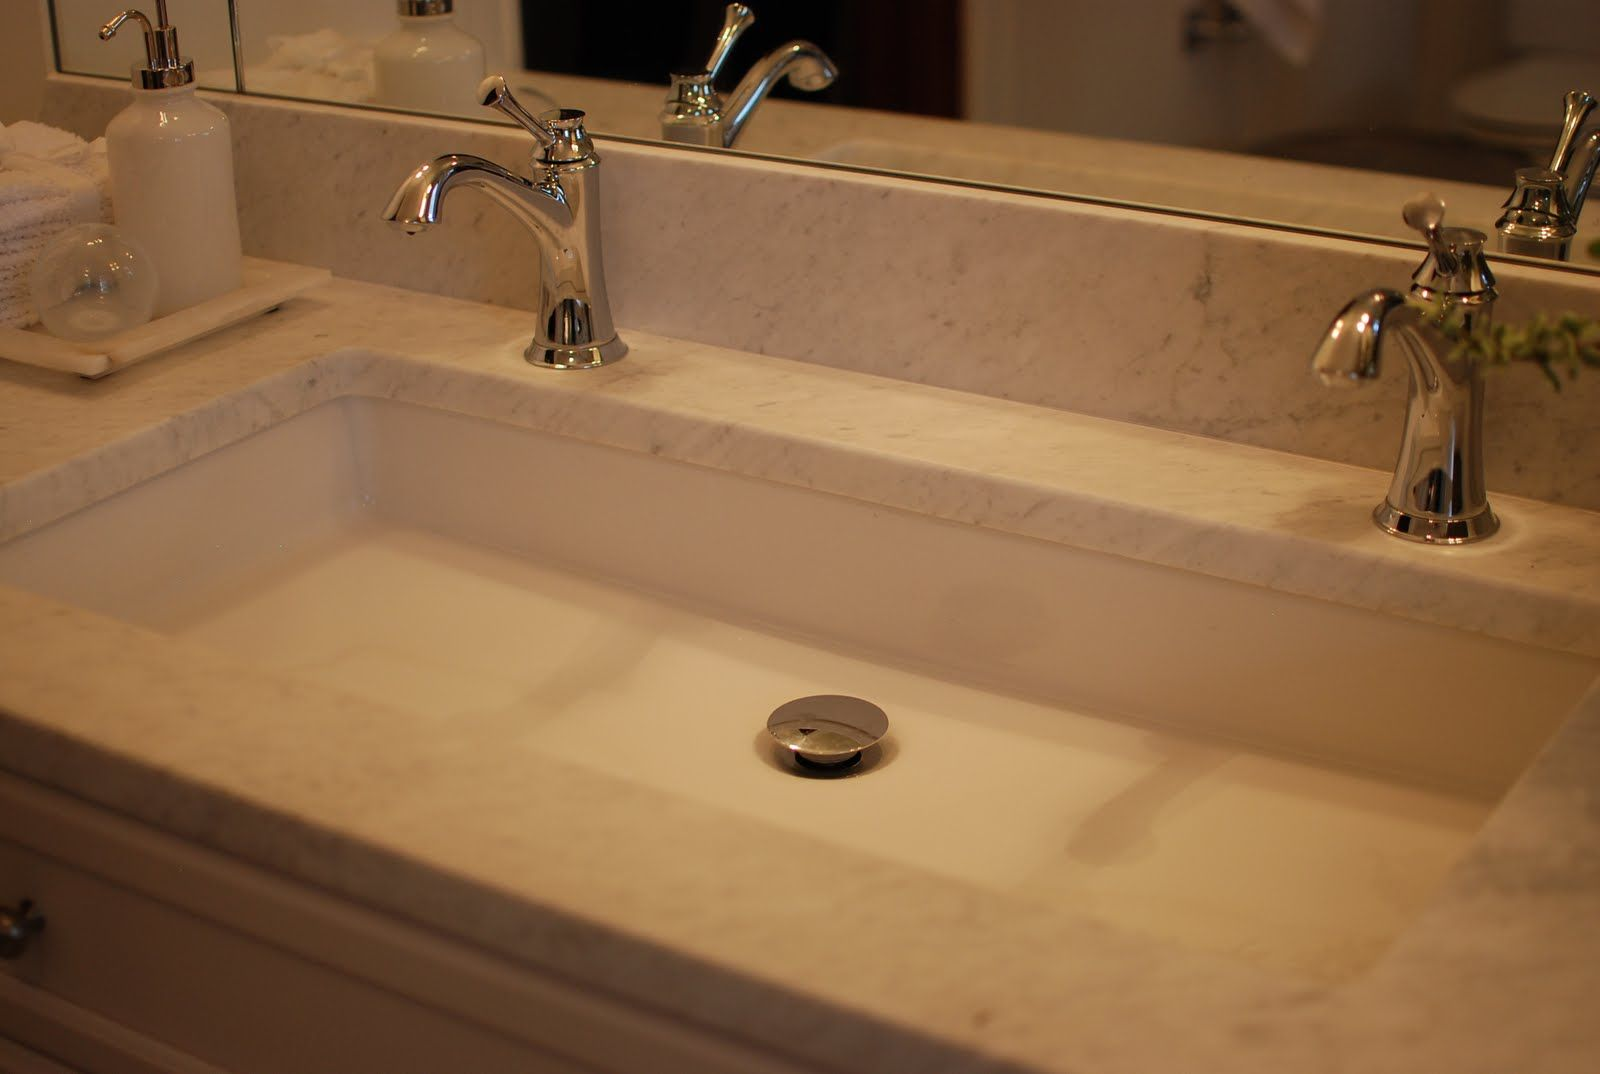 Shannon Schnell Large trough sink with two faucets  Bathroom Ideas  Pinterest  Trough sink